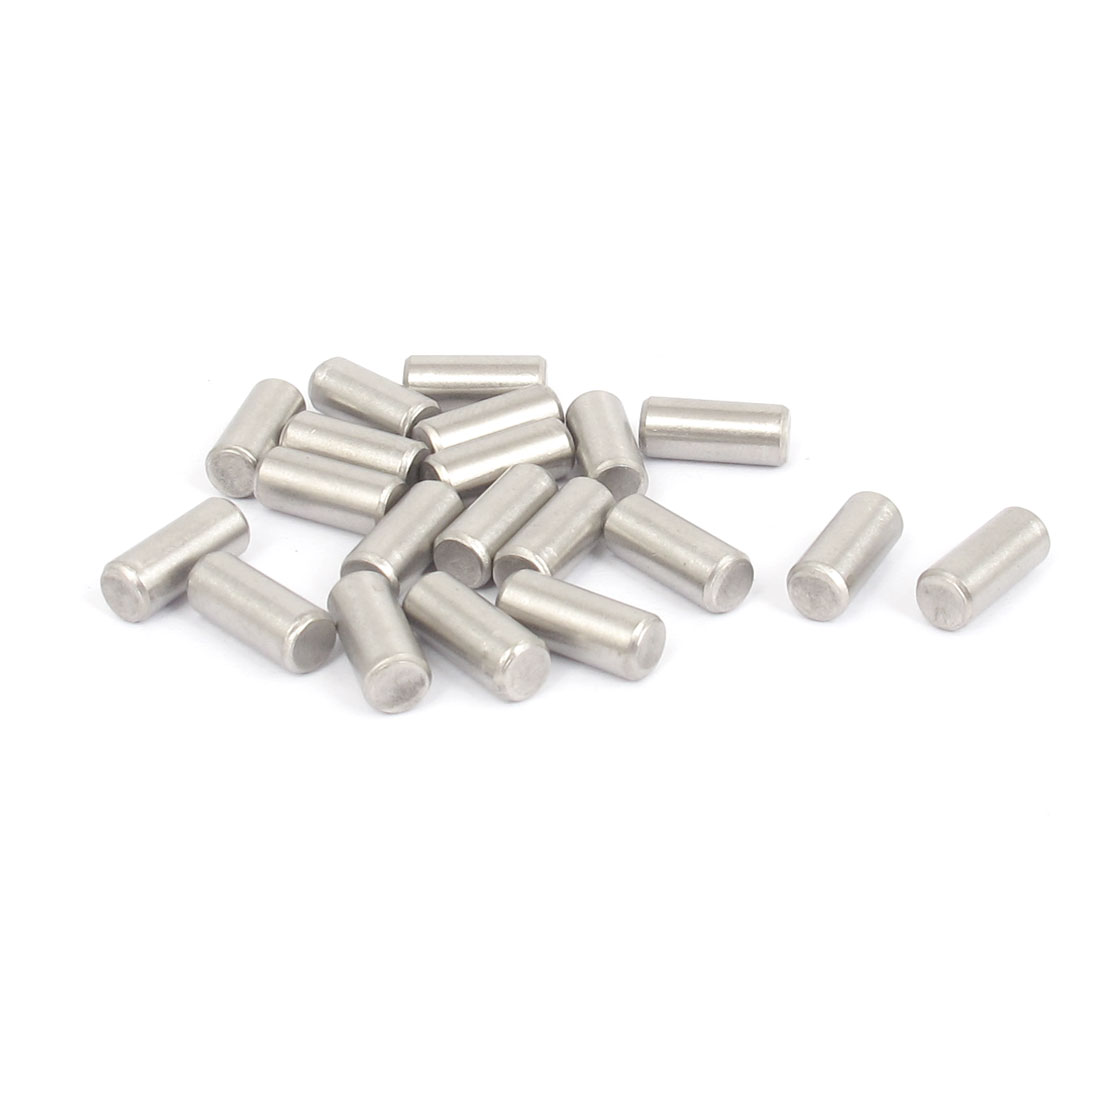 5mmx12mm 304 Stainless Steel Parallel Dowel Pins Fastener Elements 20pcs